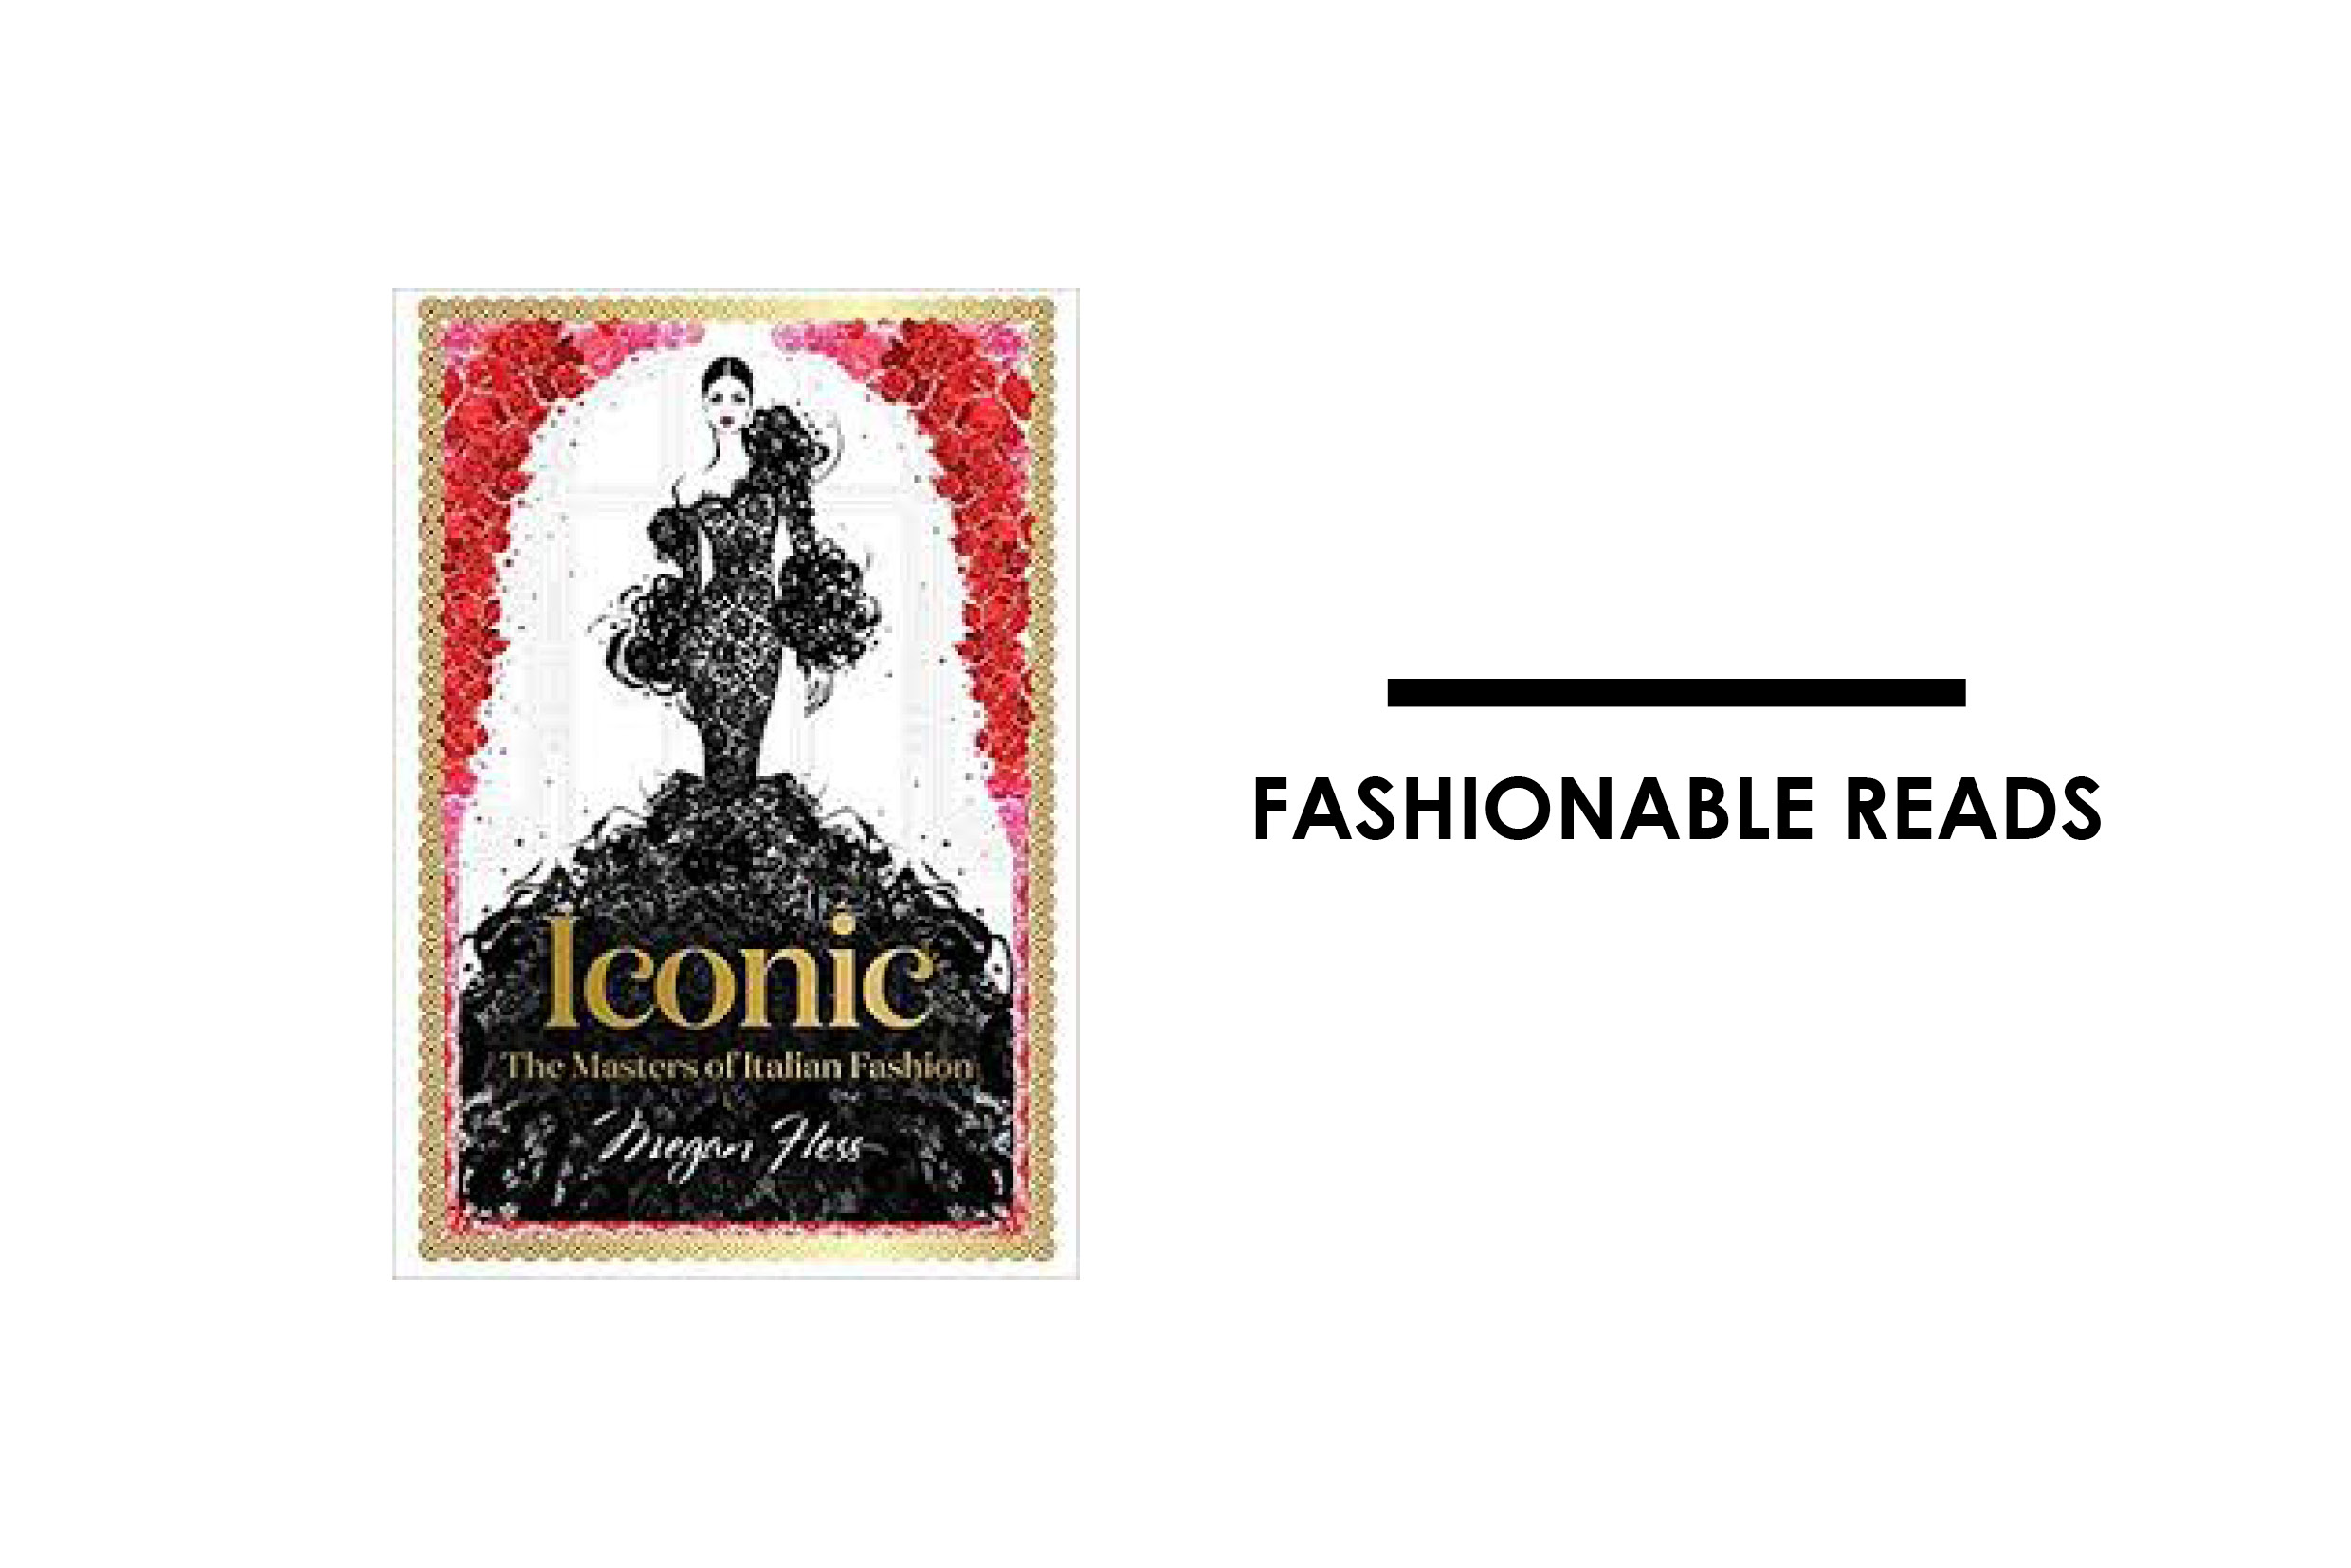 ICONIC: MASTERS OF ITALIAN FASHION By Megan Hess